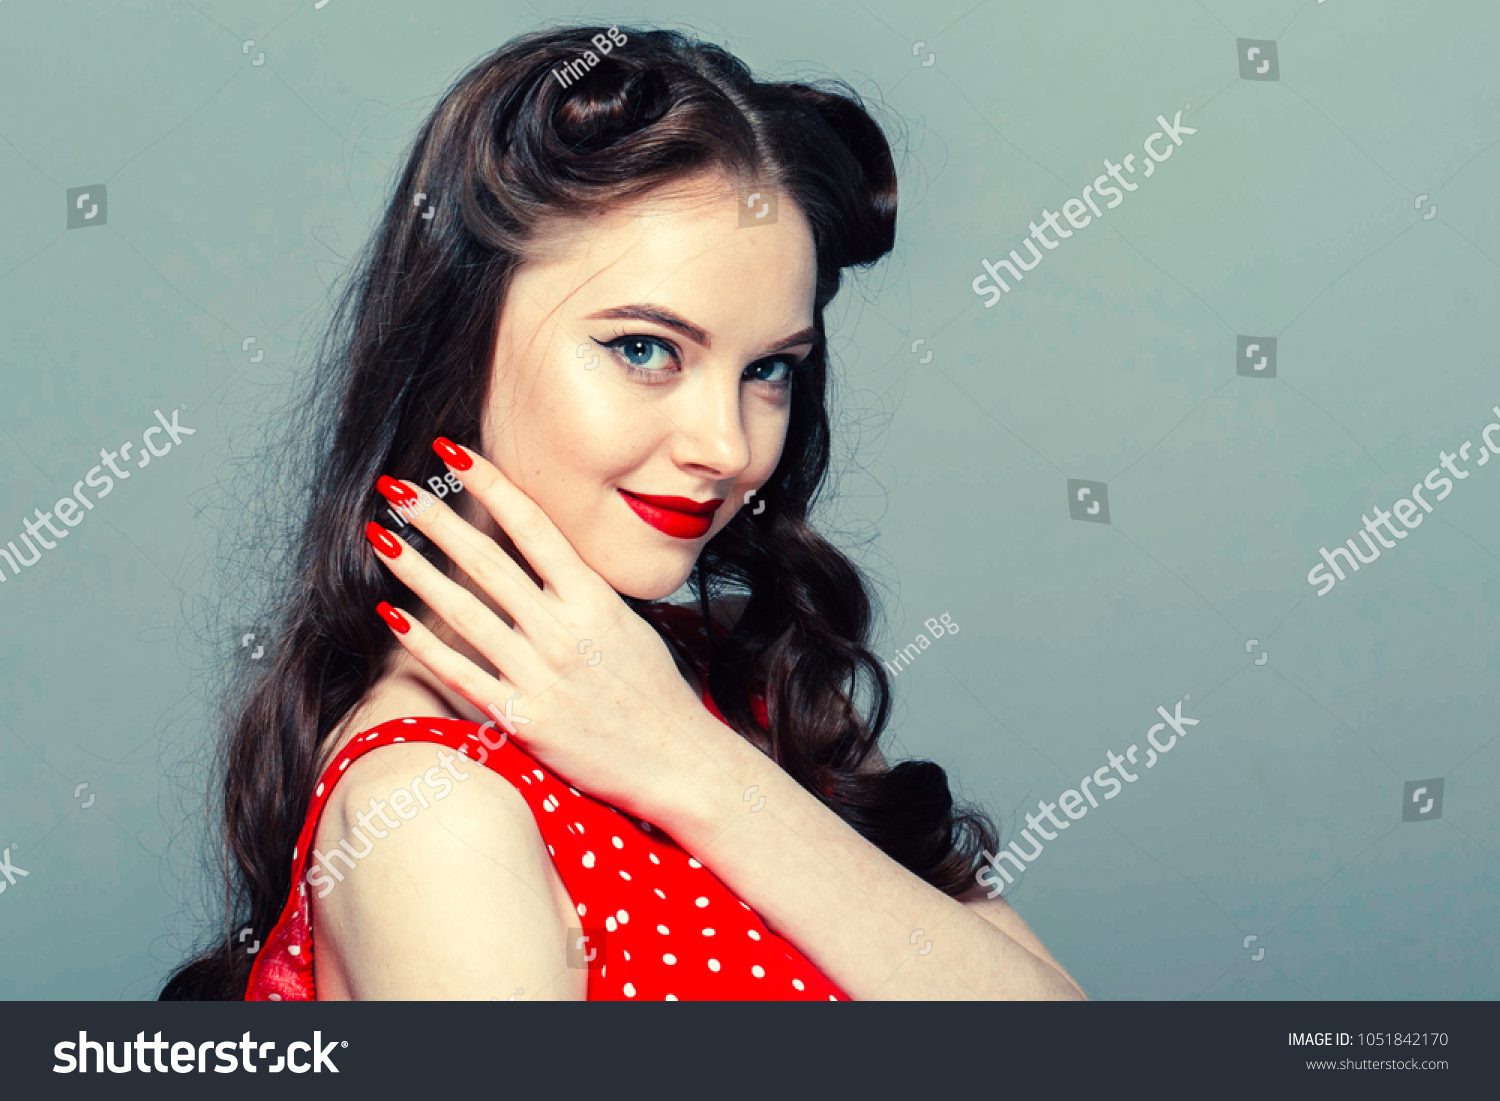 Pin Woman Vintage Beautiful Girl Pinup Stock Photo Edit Now